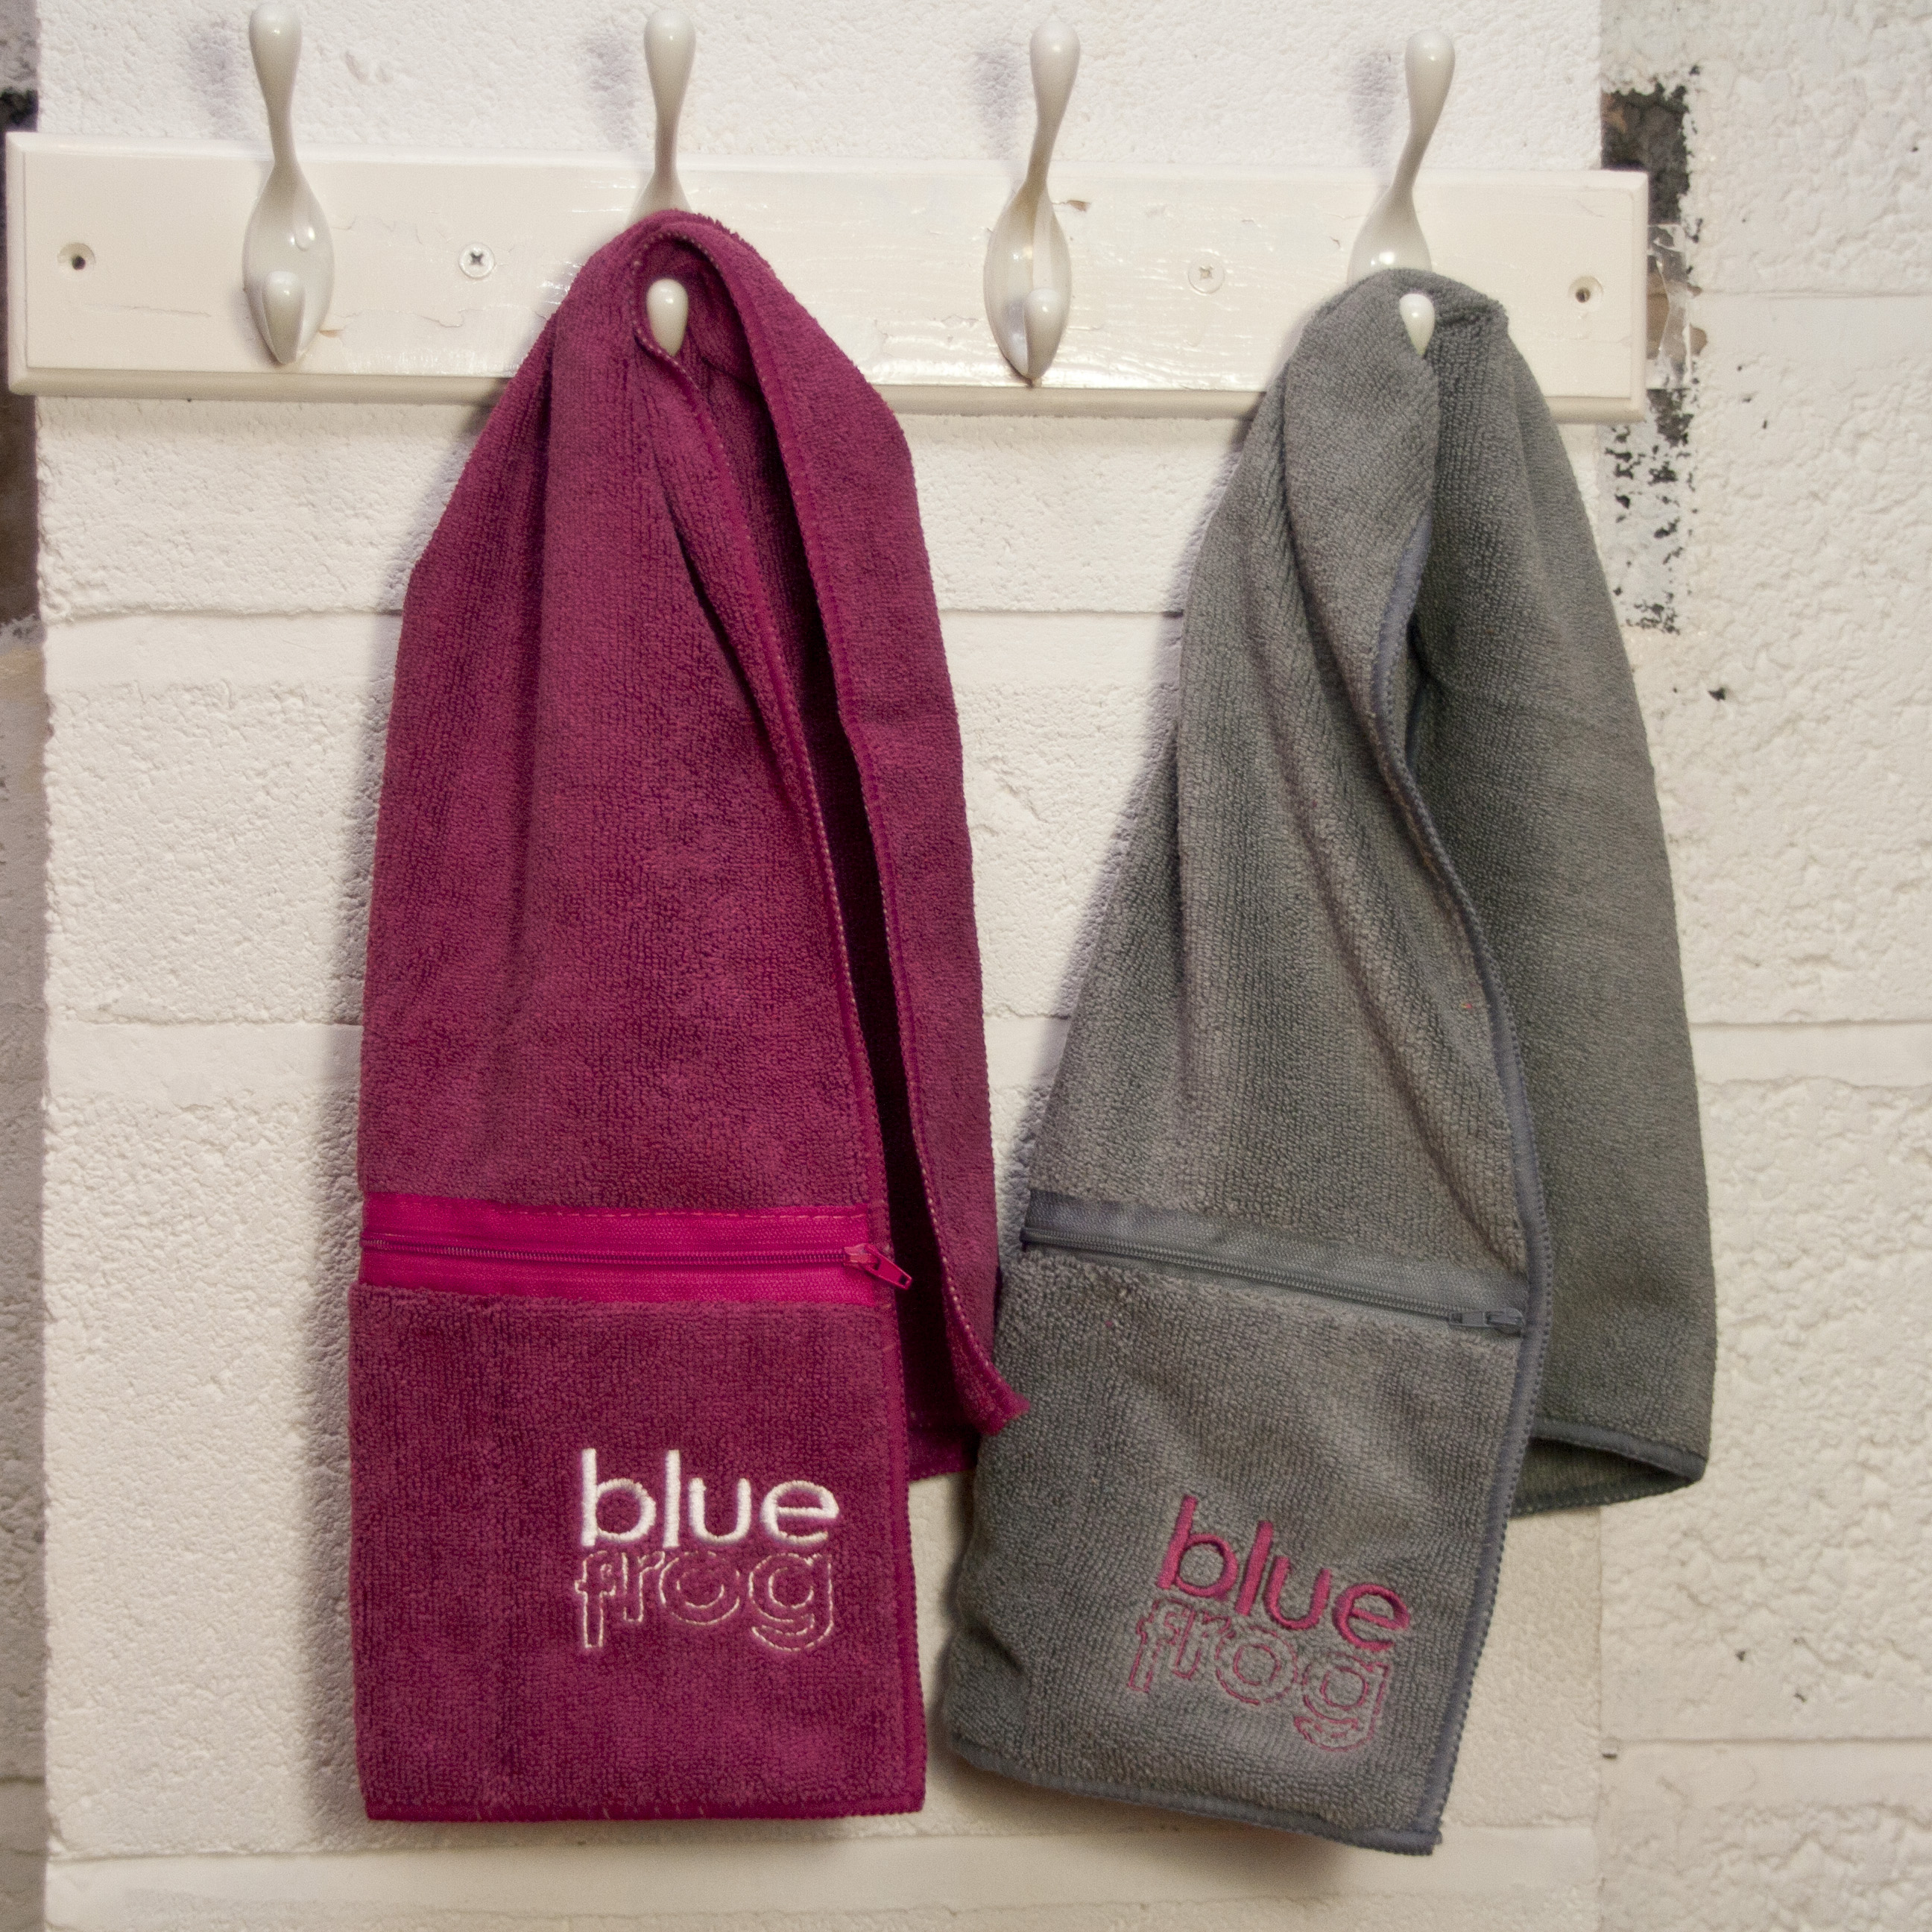 His & Hers Sweat Towels: 1 Pink, 1 Grey